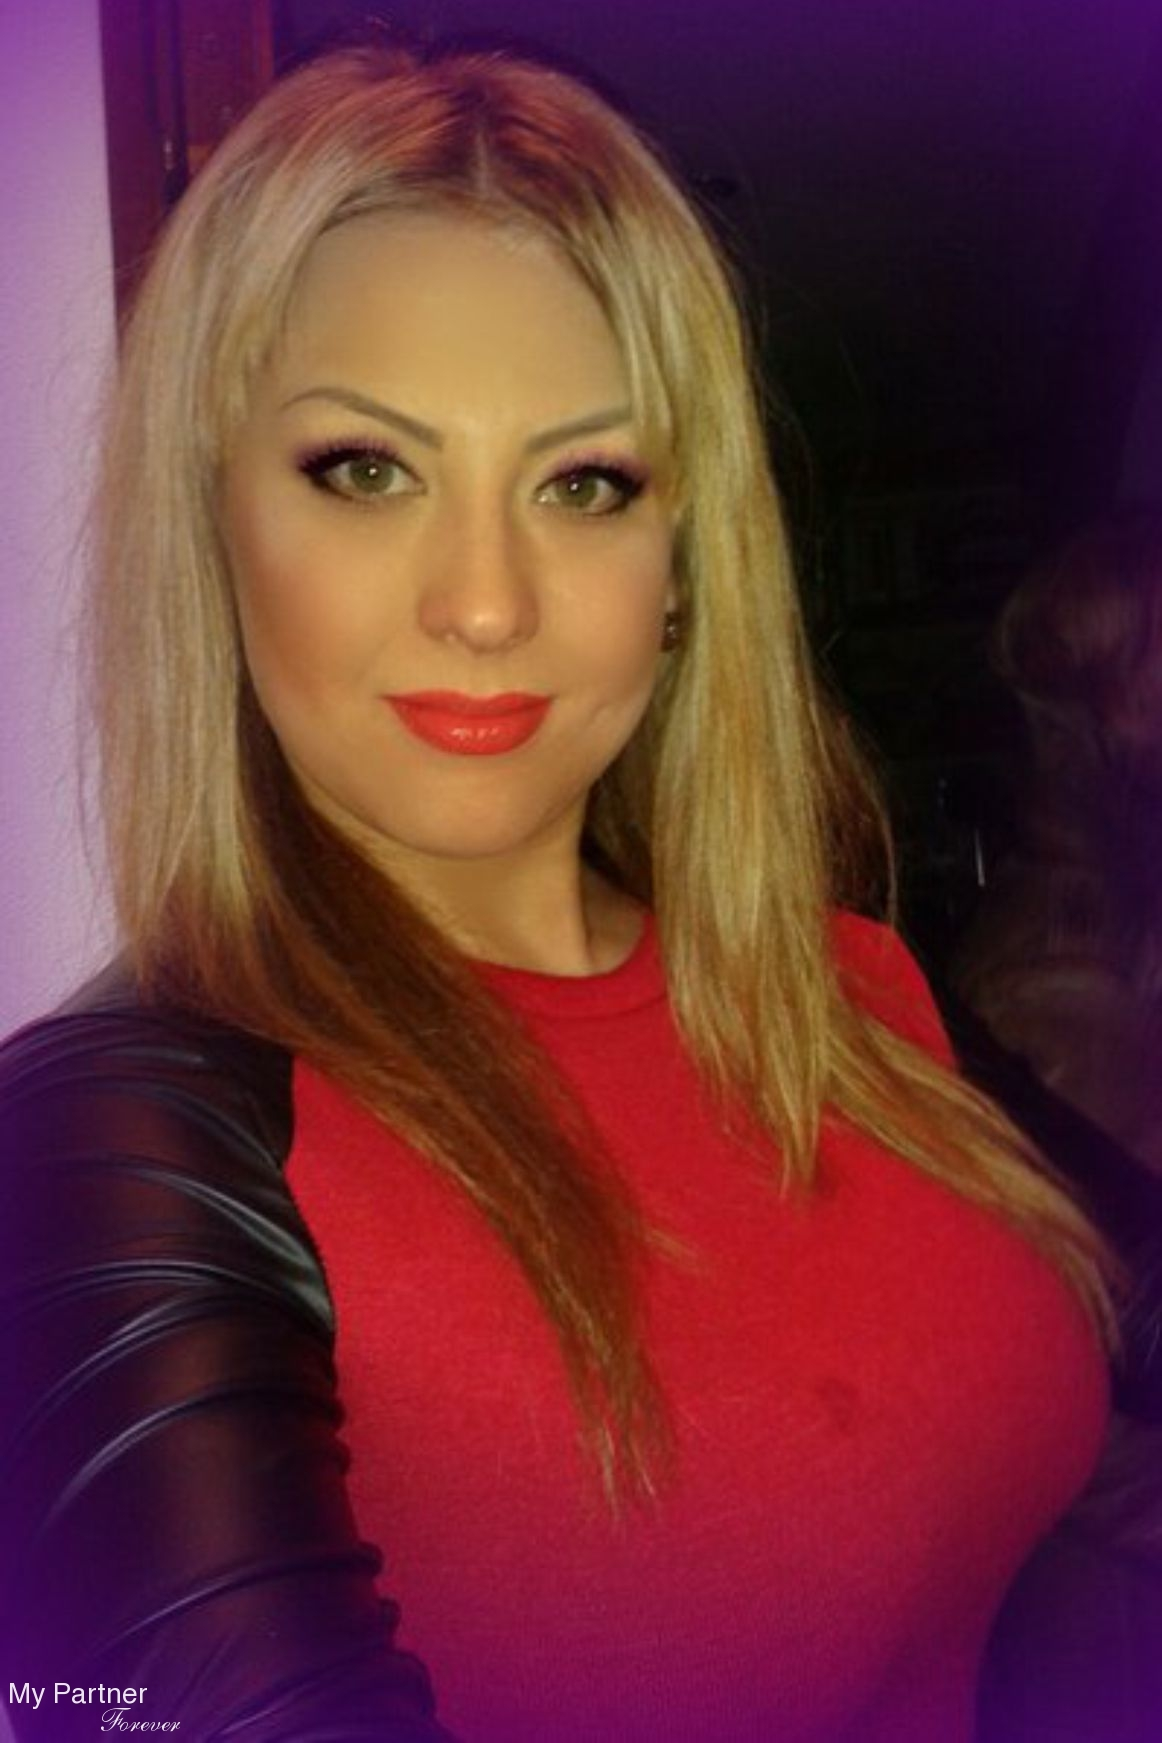 Adult dating sites russia